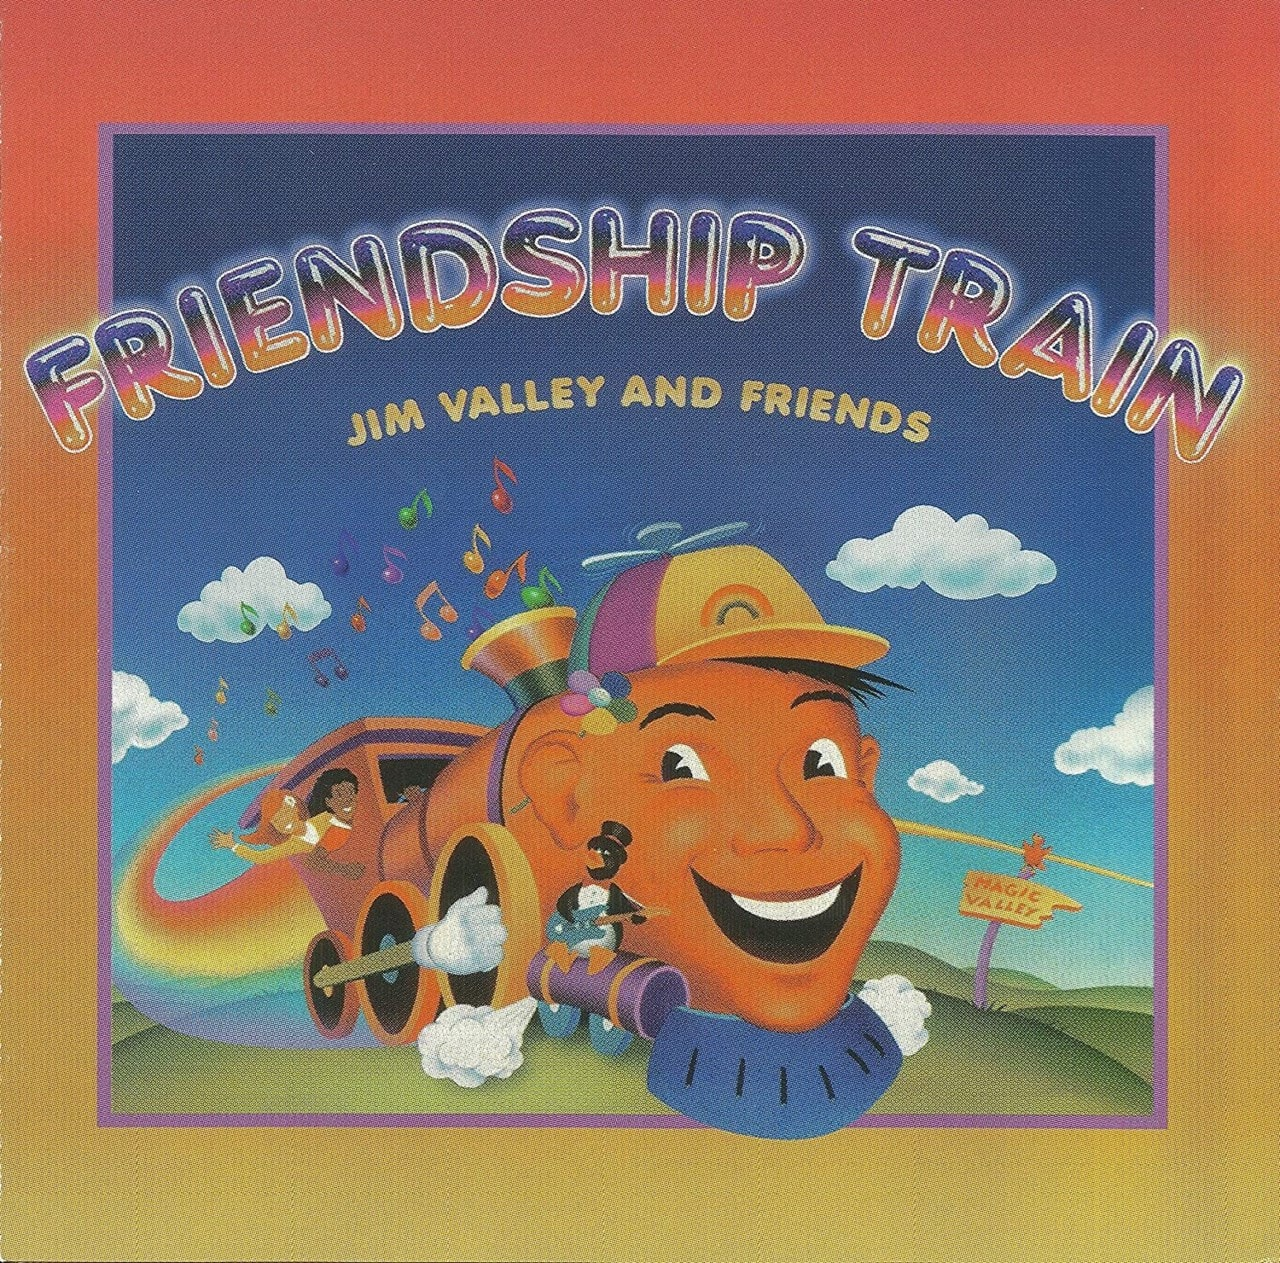 Friendship Train - 1